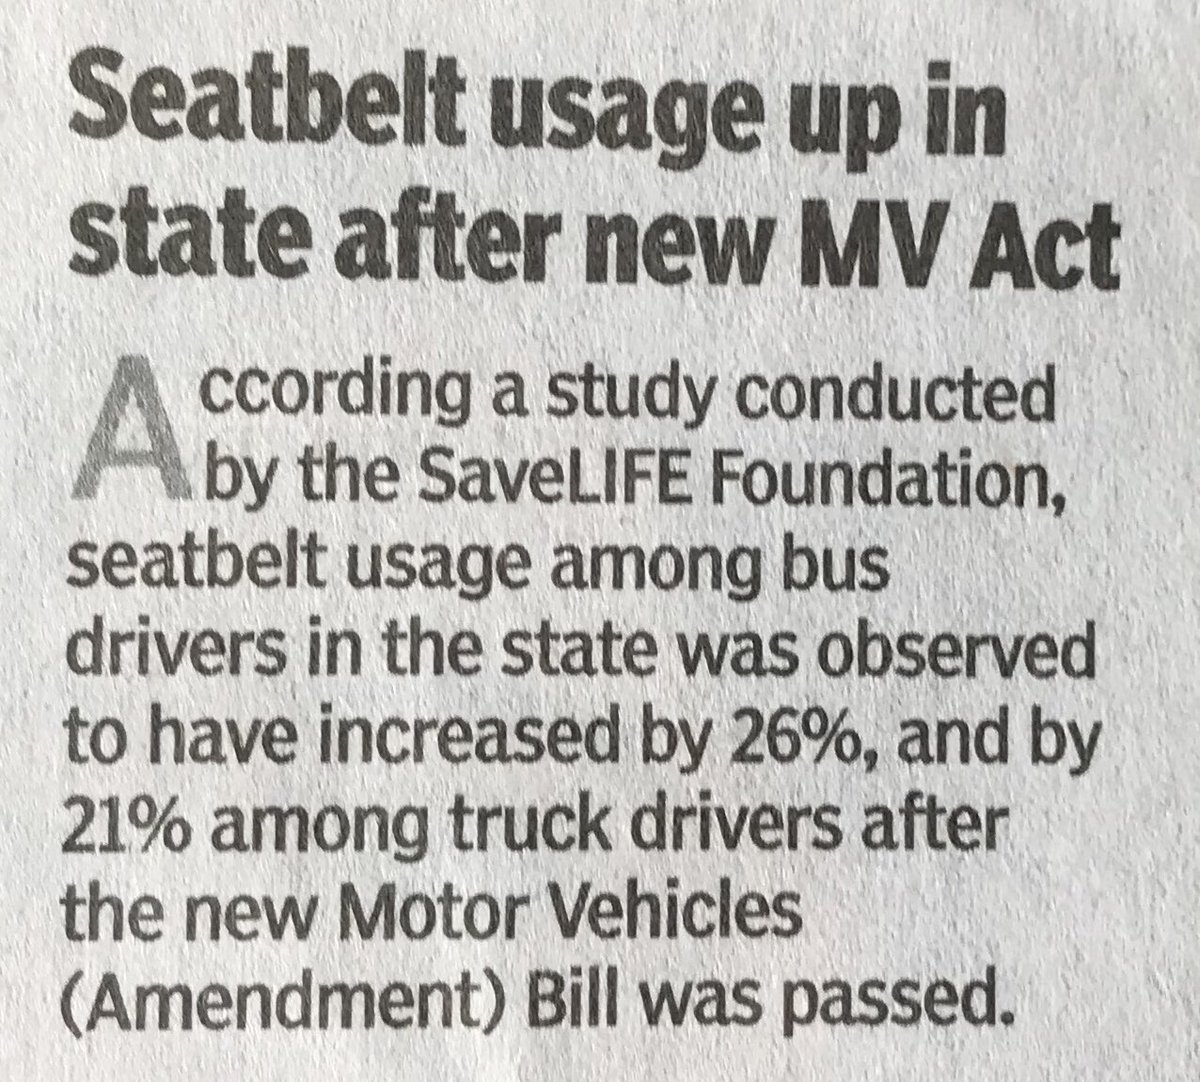 Seatbelt usage up among bus and truck drivers in state after MV Bill was passed. That's a healthy sign. @savelifeindia @silkysparks7 @DRaote @Dev_Fadnavis @mtptraffic @govaleajay @nnatuTOI @UWMumbai @RoadsOfMumbai